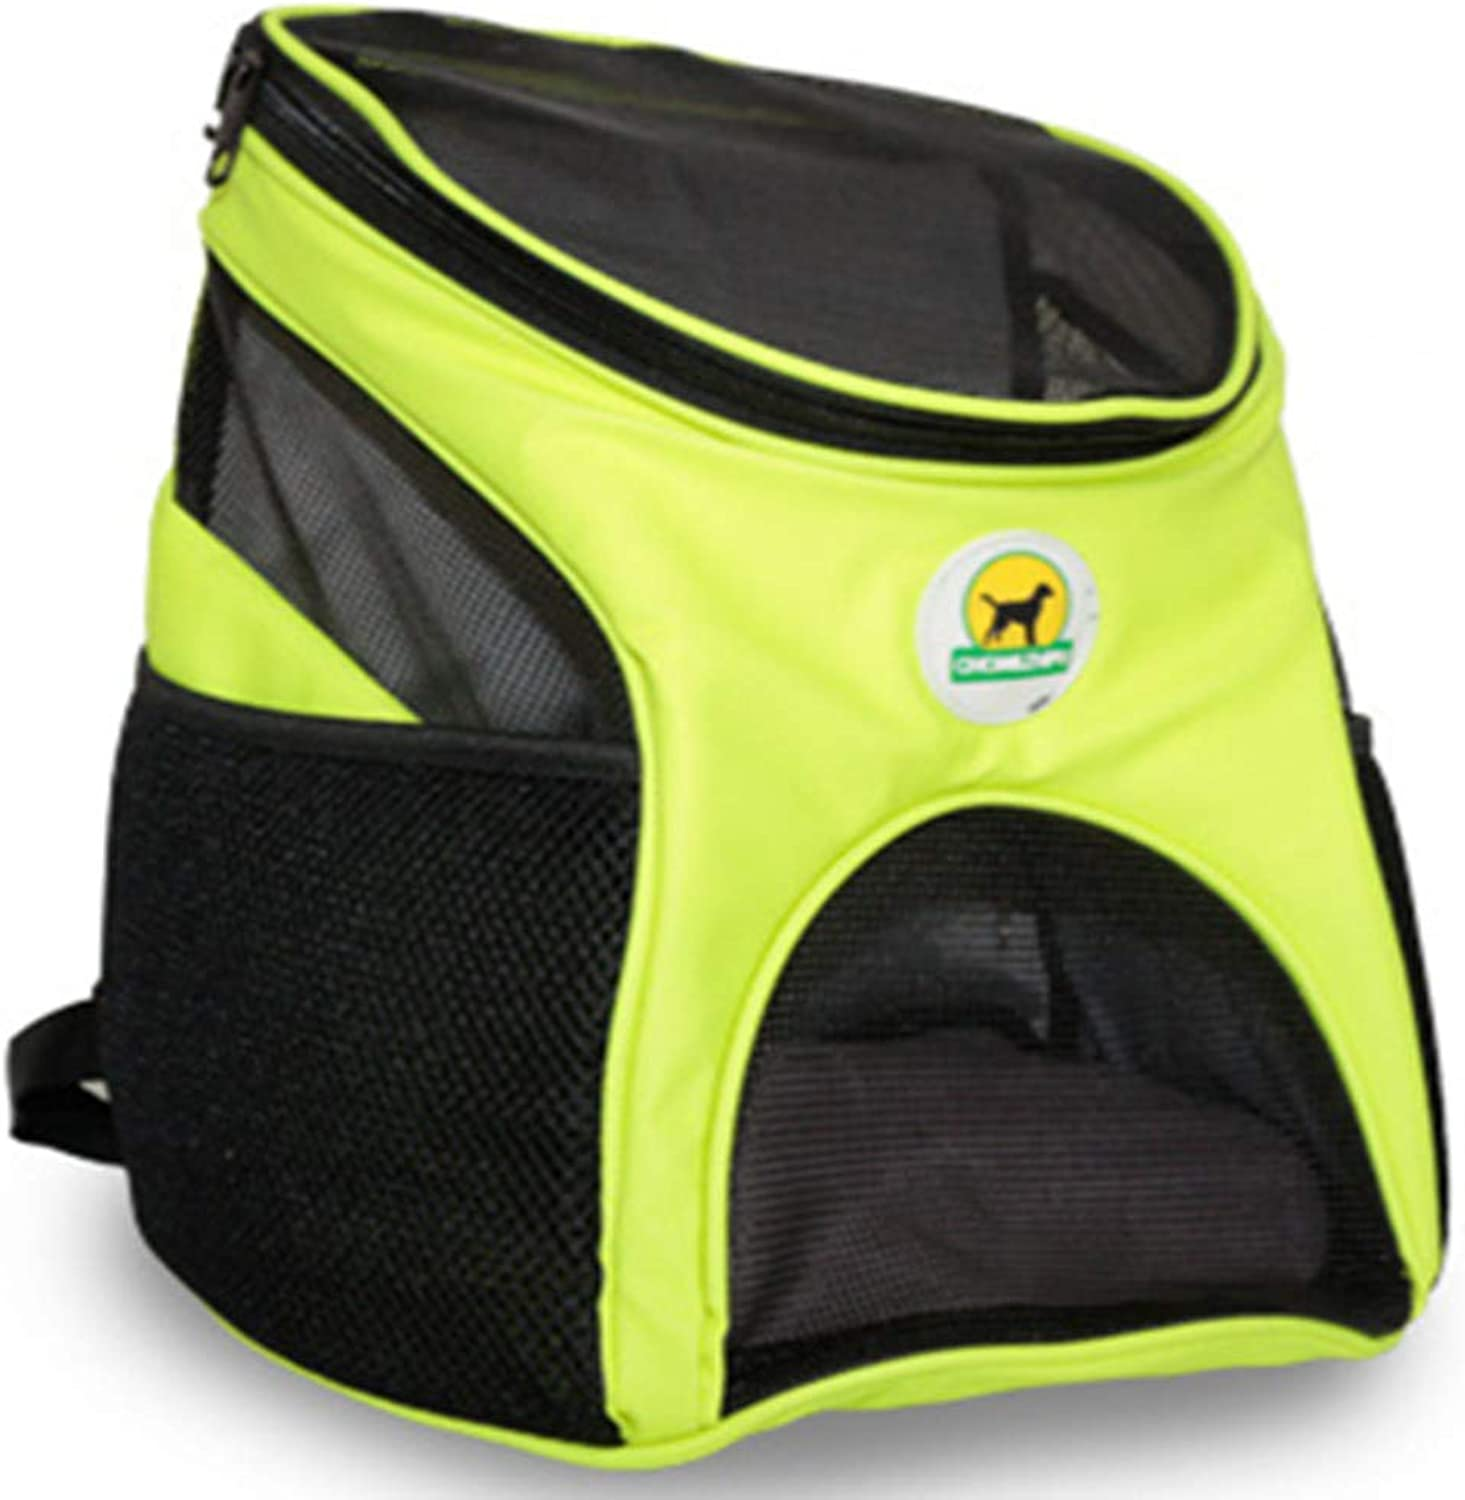 Pet Backpack Fluorescent Cloth Mesh Fashion Casual Multiple Carrying Way Reinforced Handle Breathable Waterproof Comfortable Outdoor Products,Yellow